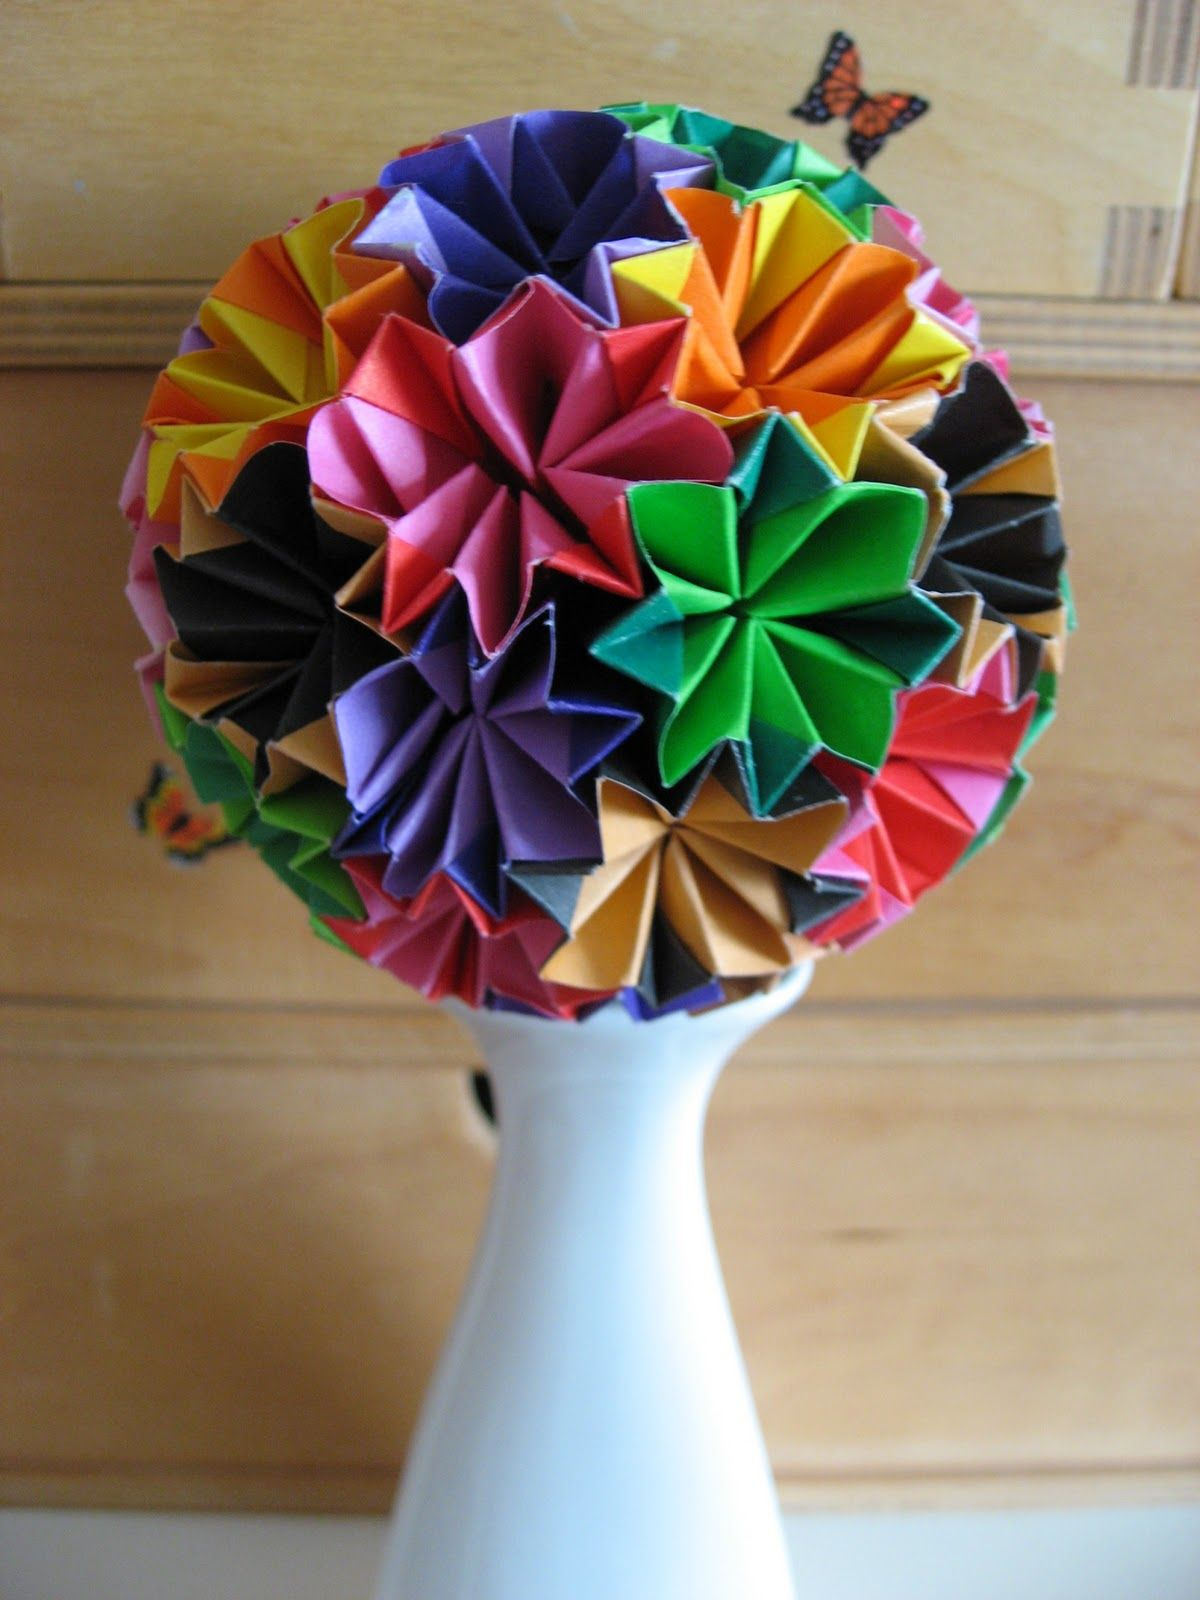 kusudama origami | To Do List | Origami paper art, Origami ... - photo#27